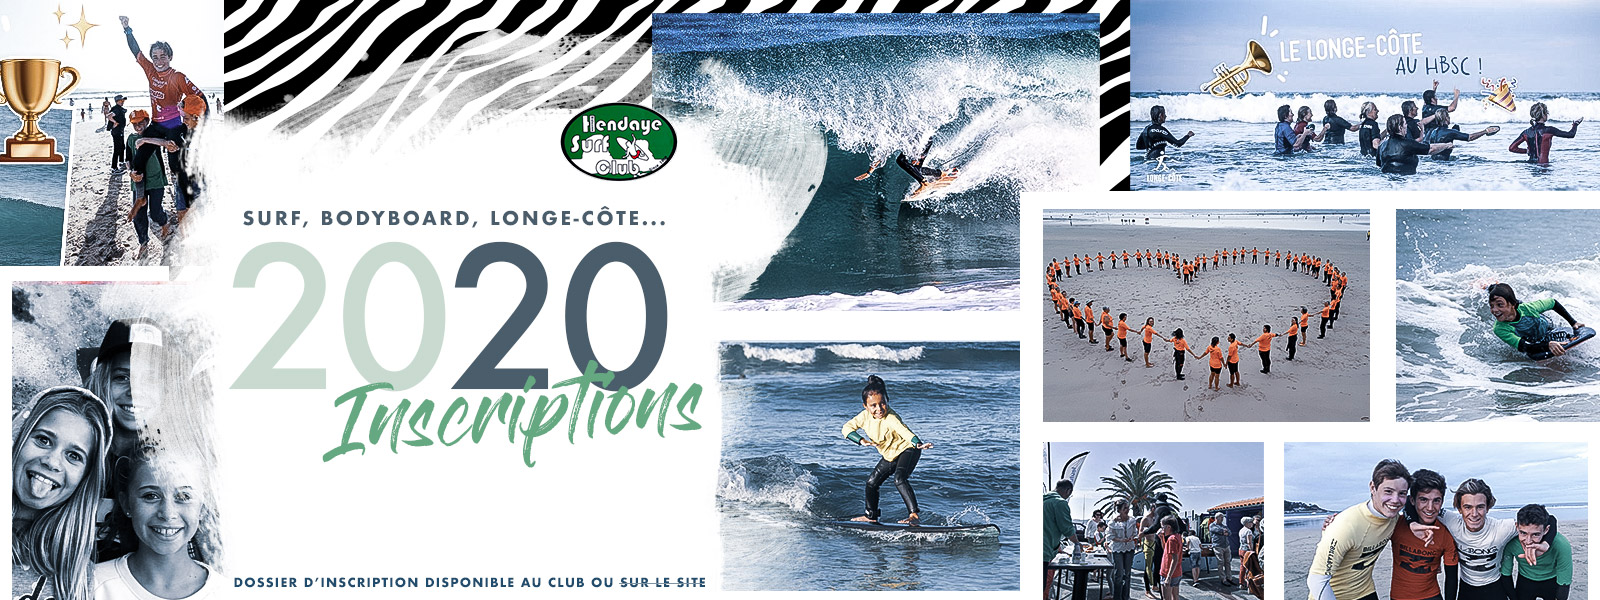 Hendaye Surf : inscription 2020